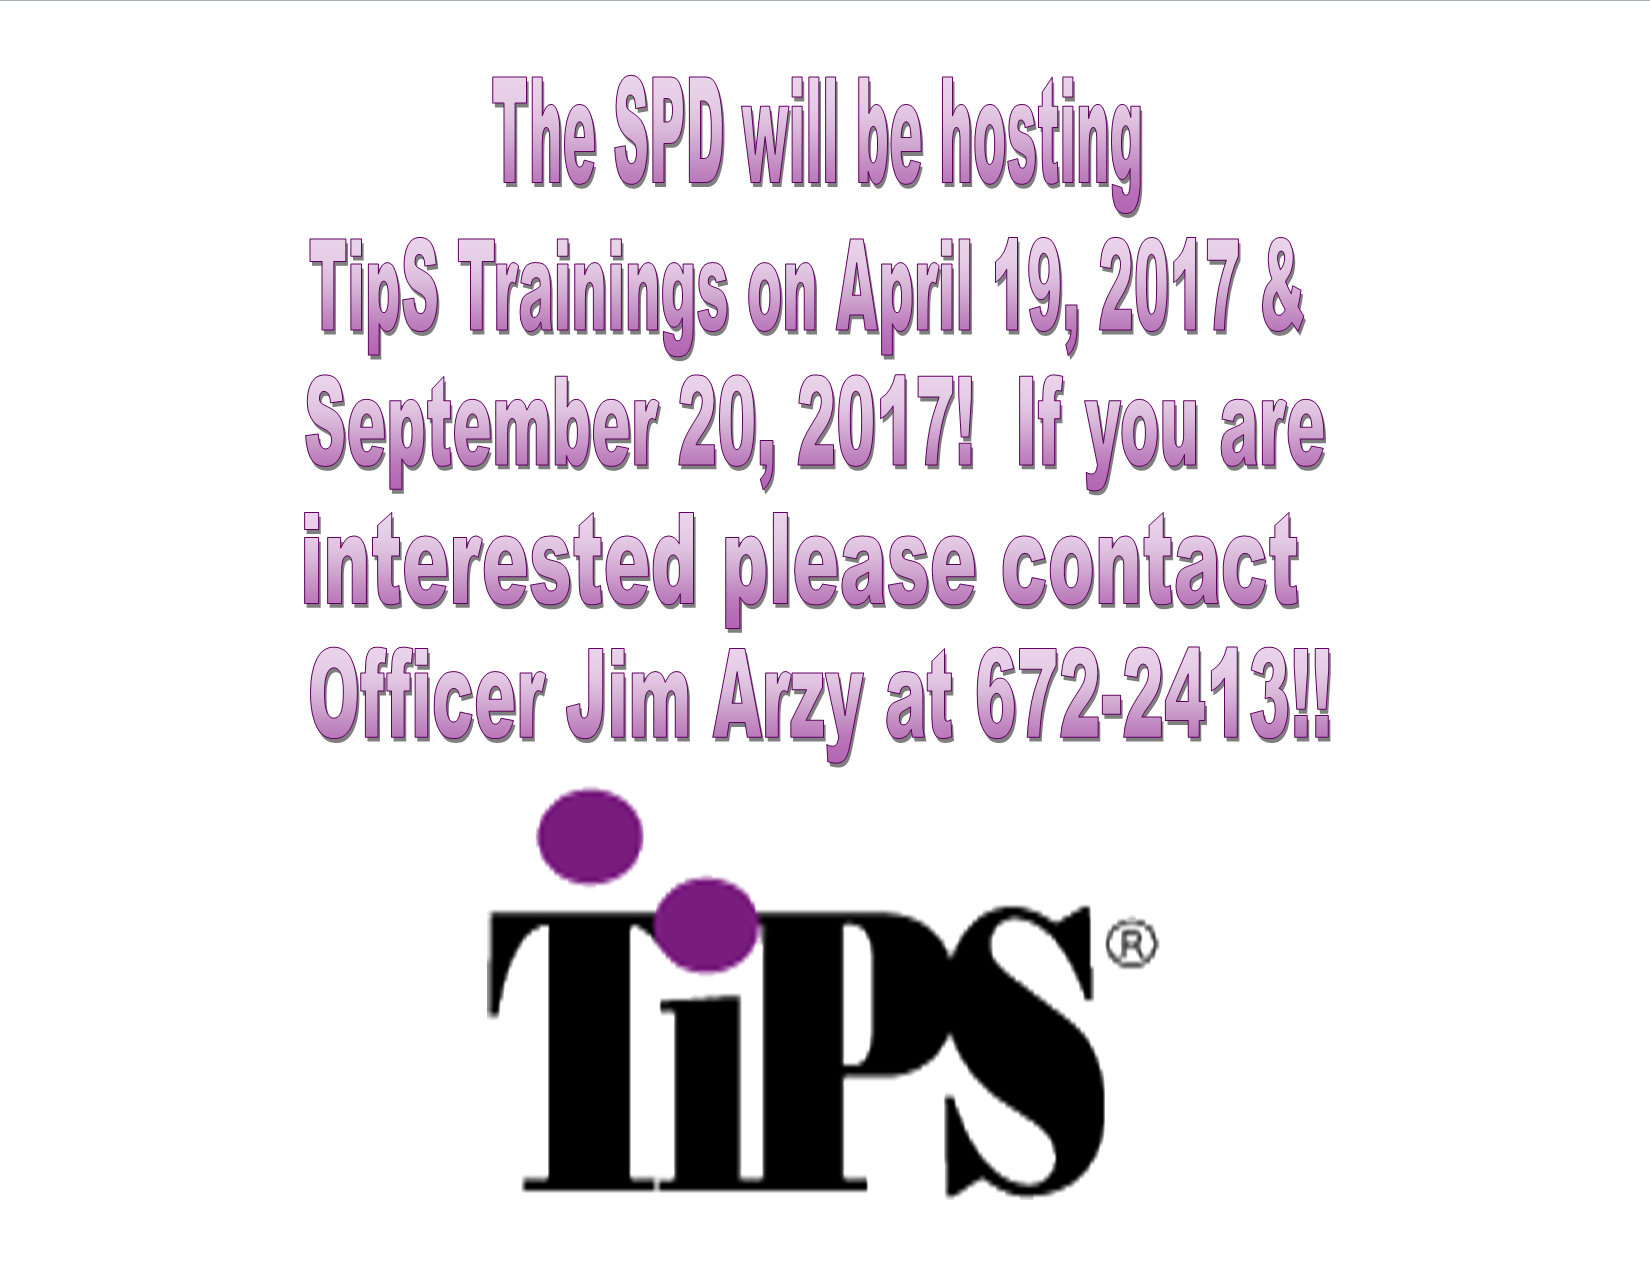 Discussion on this topic: How to Report IRS Scams, how-to-report-irs-scams/